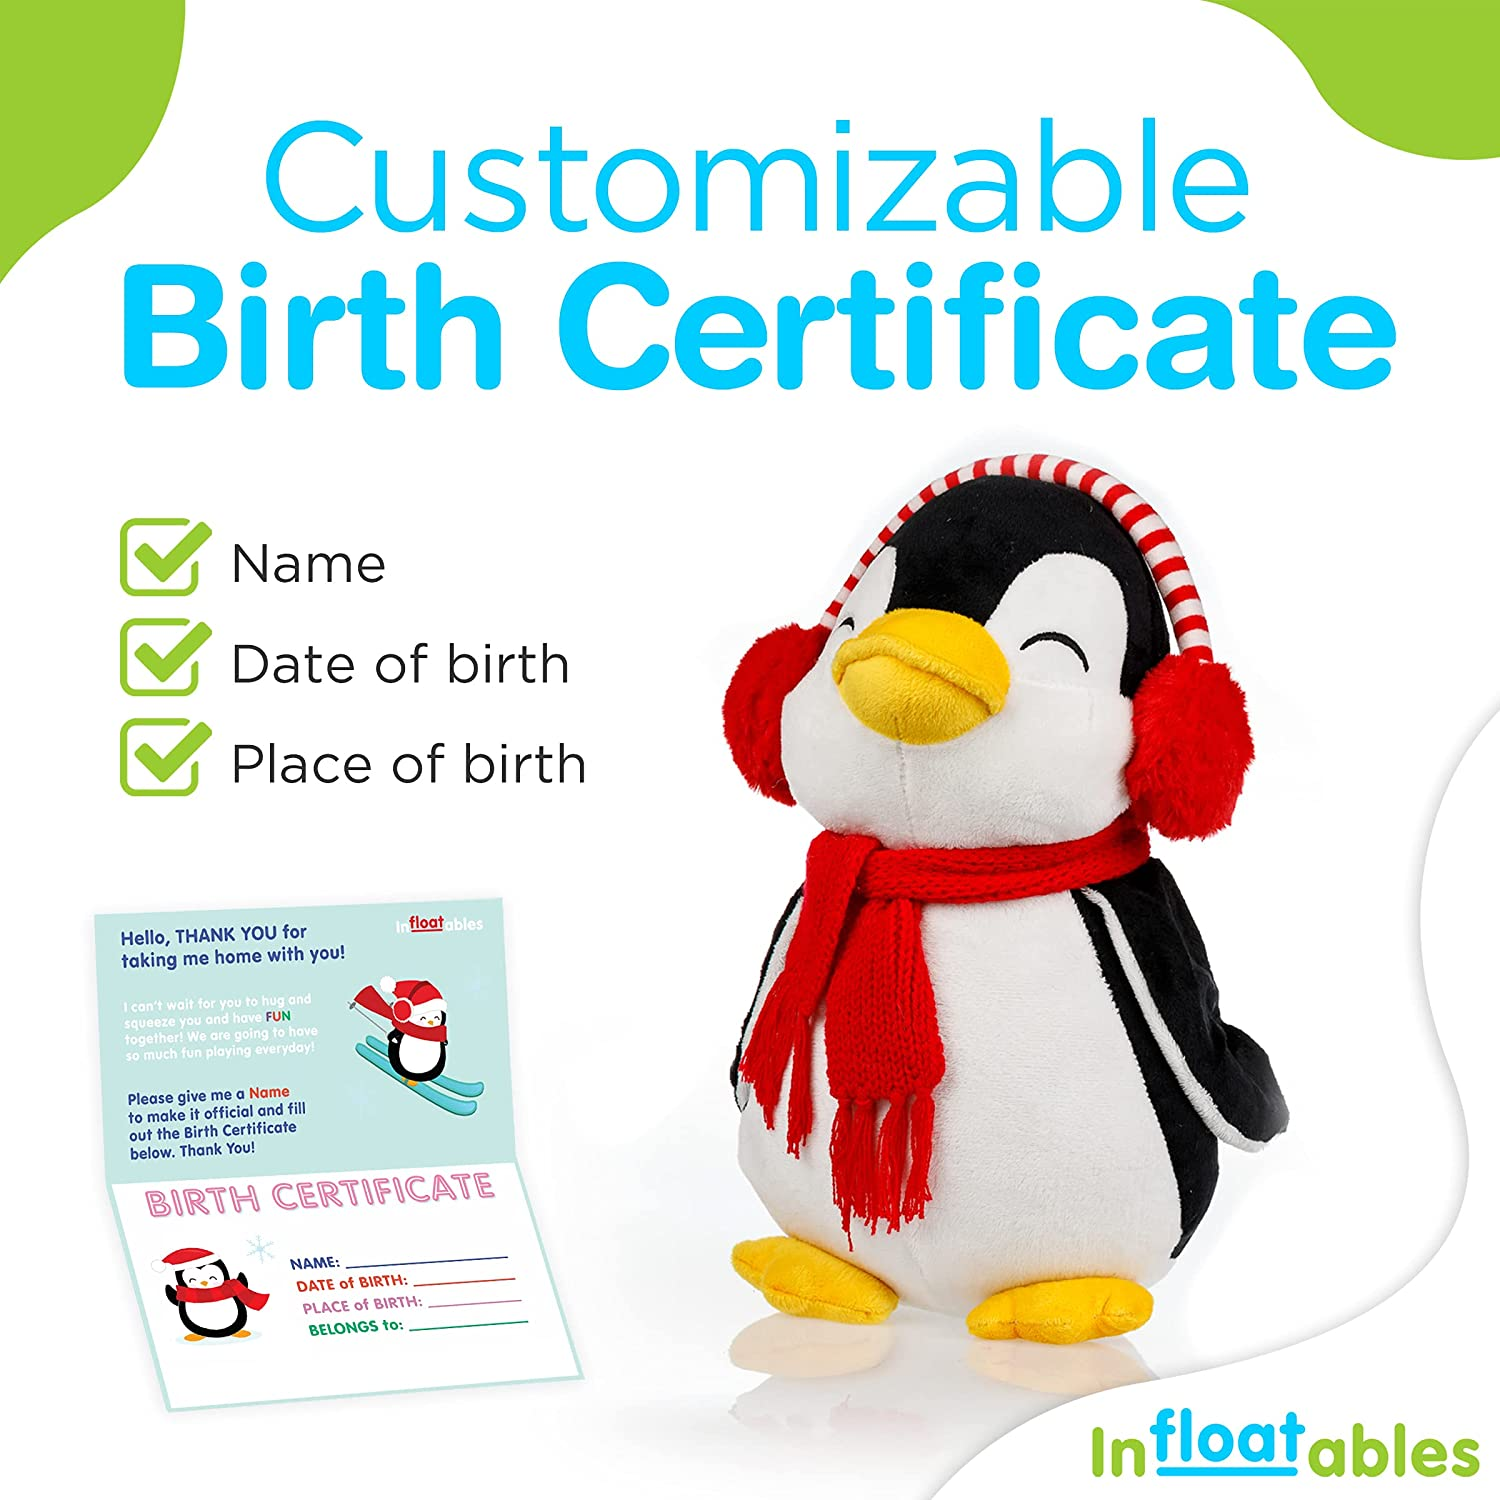 Amazon Com Infloatables Stuffed Penguin 12 Inch Penguin Cute Plush Penguin With Scarf And Knitted Earmuffs Personalize It With Customizable Birth Certificate Stuffed Ocean Animals Kids Birthday Gift Toys Games